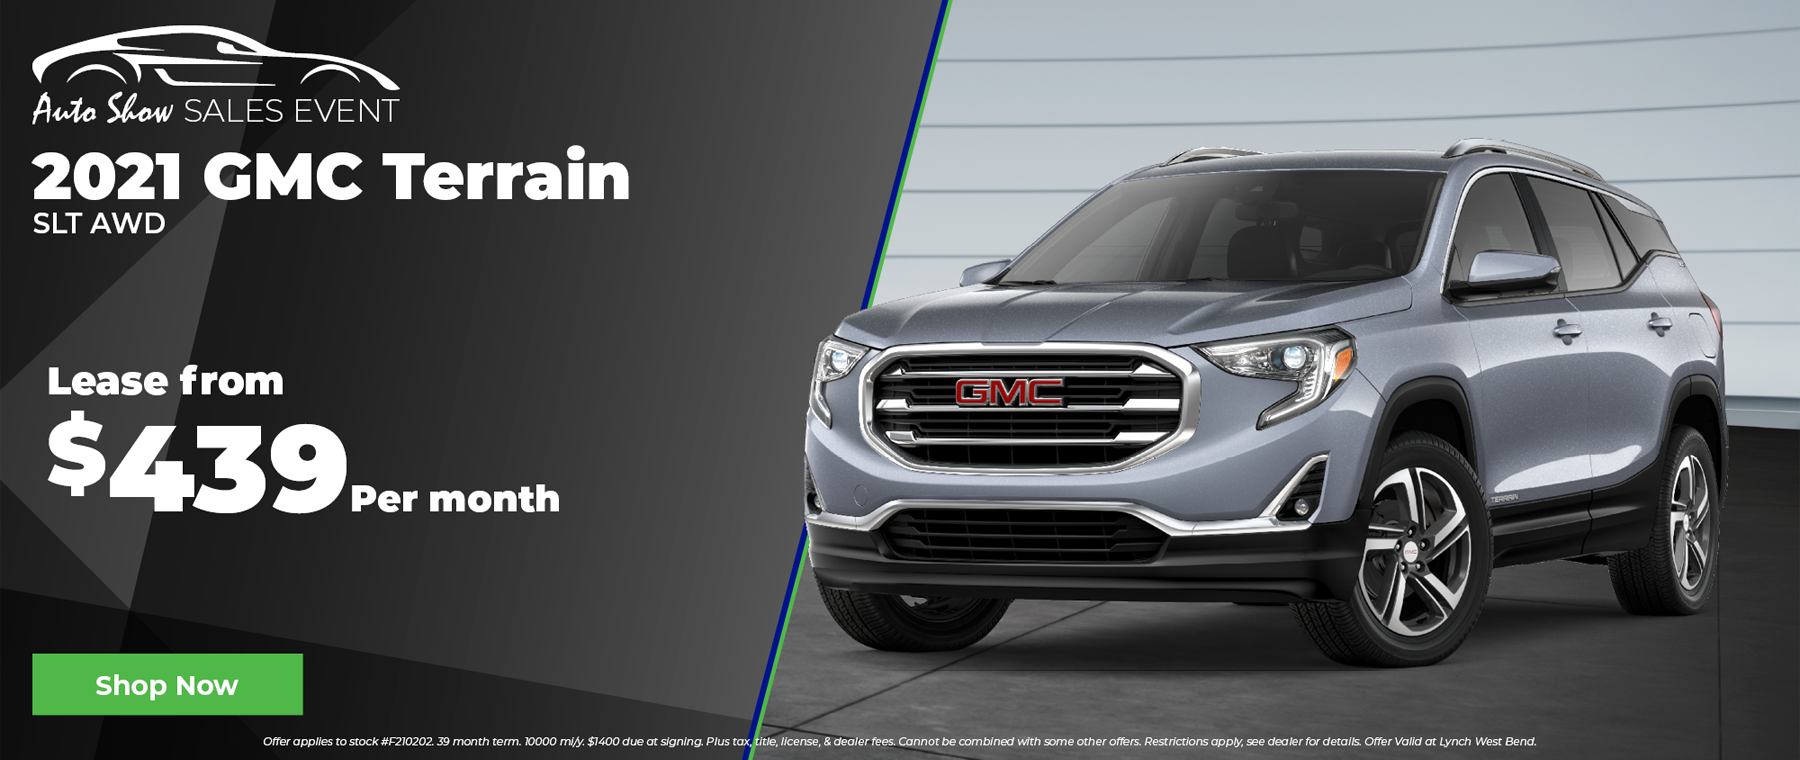 2021 GMC Terrain for $439 per month in West Bend Wisconsin